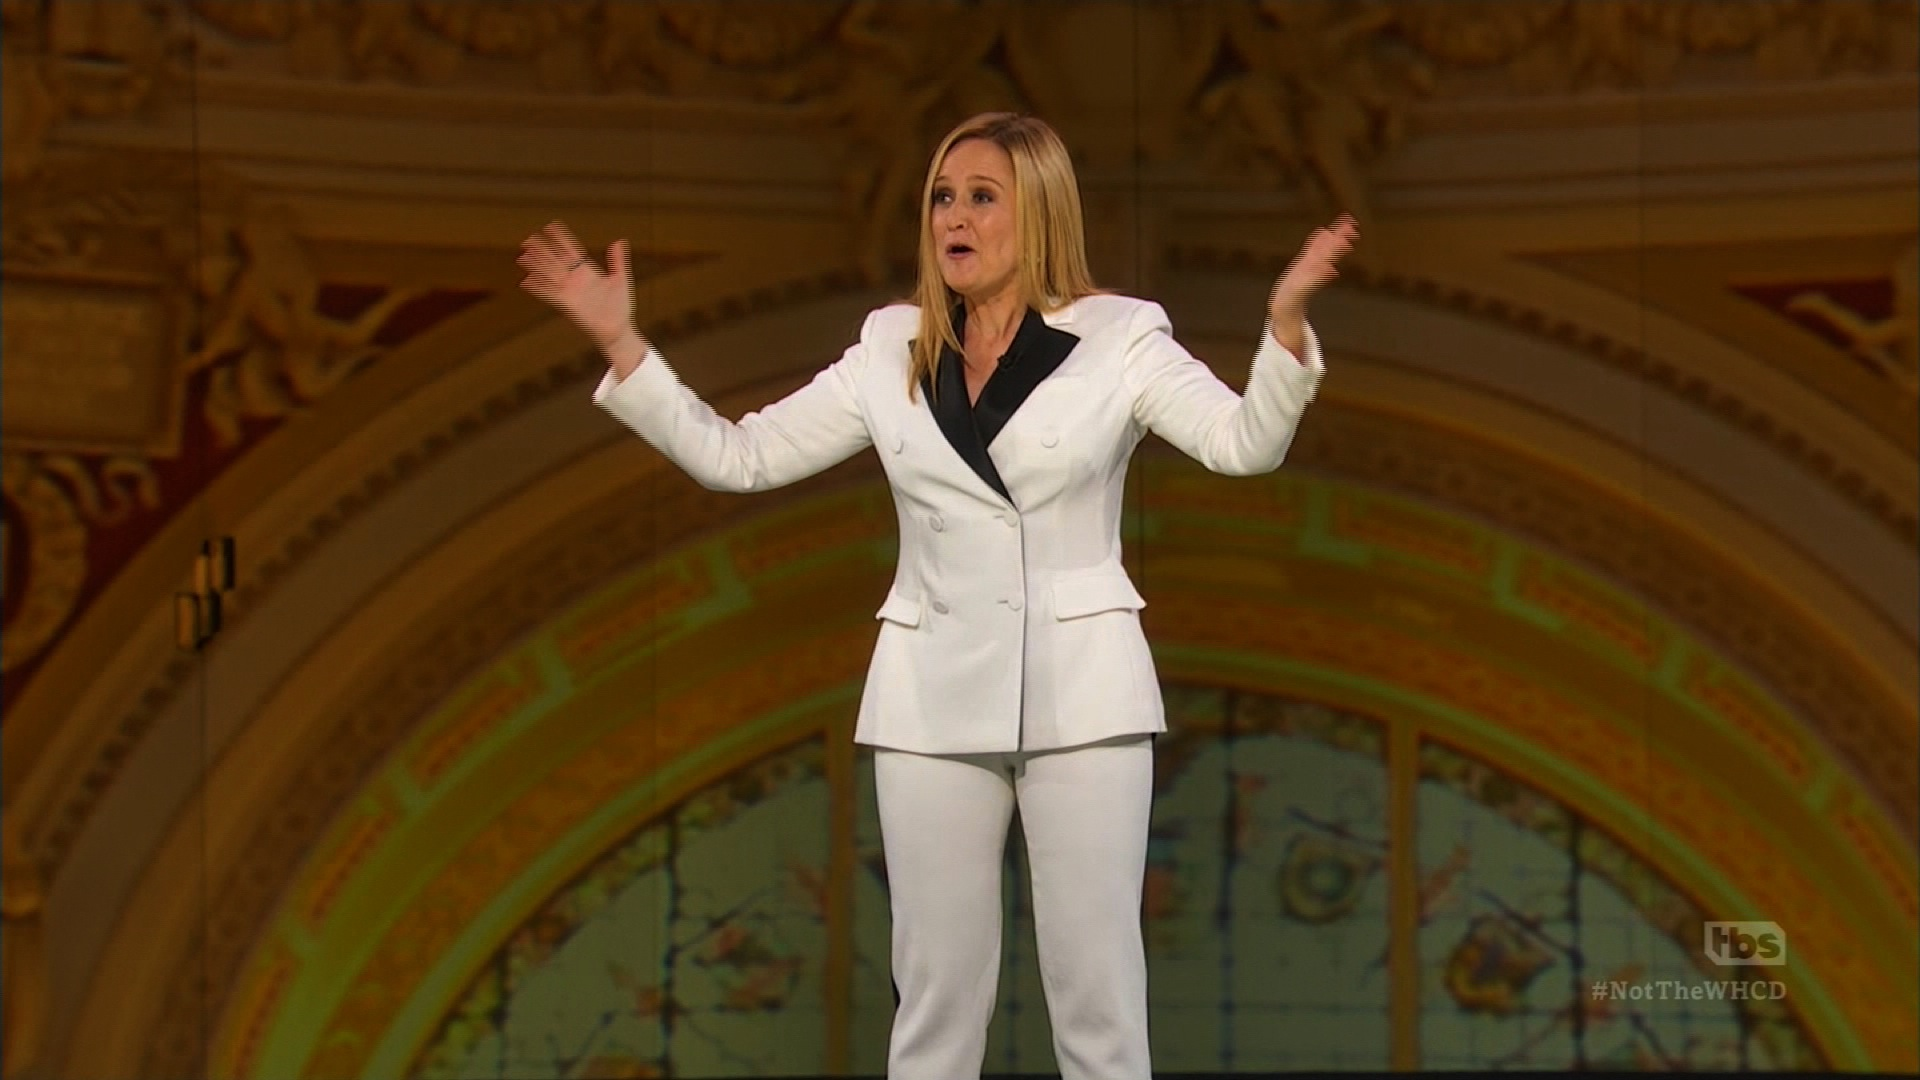 samantha bee full interview state of the union - cnn video